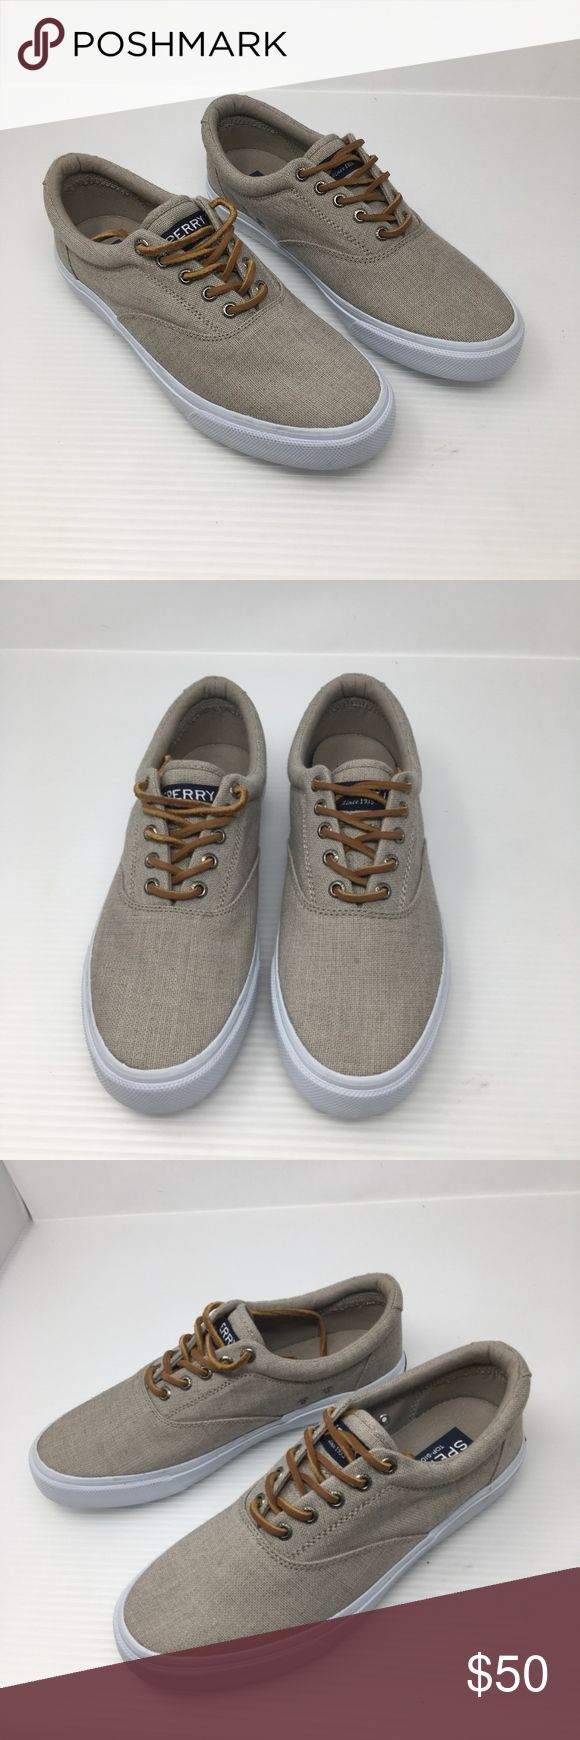 Sperry Top Sider Men's 9 Sneaker New with just a few sole scuffs from transport and storage. Size 9 Sperry Shoes Sneakers